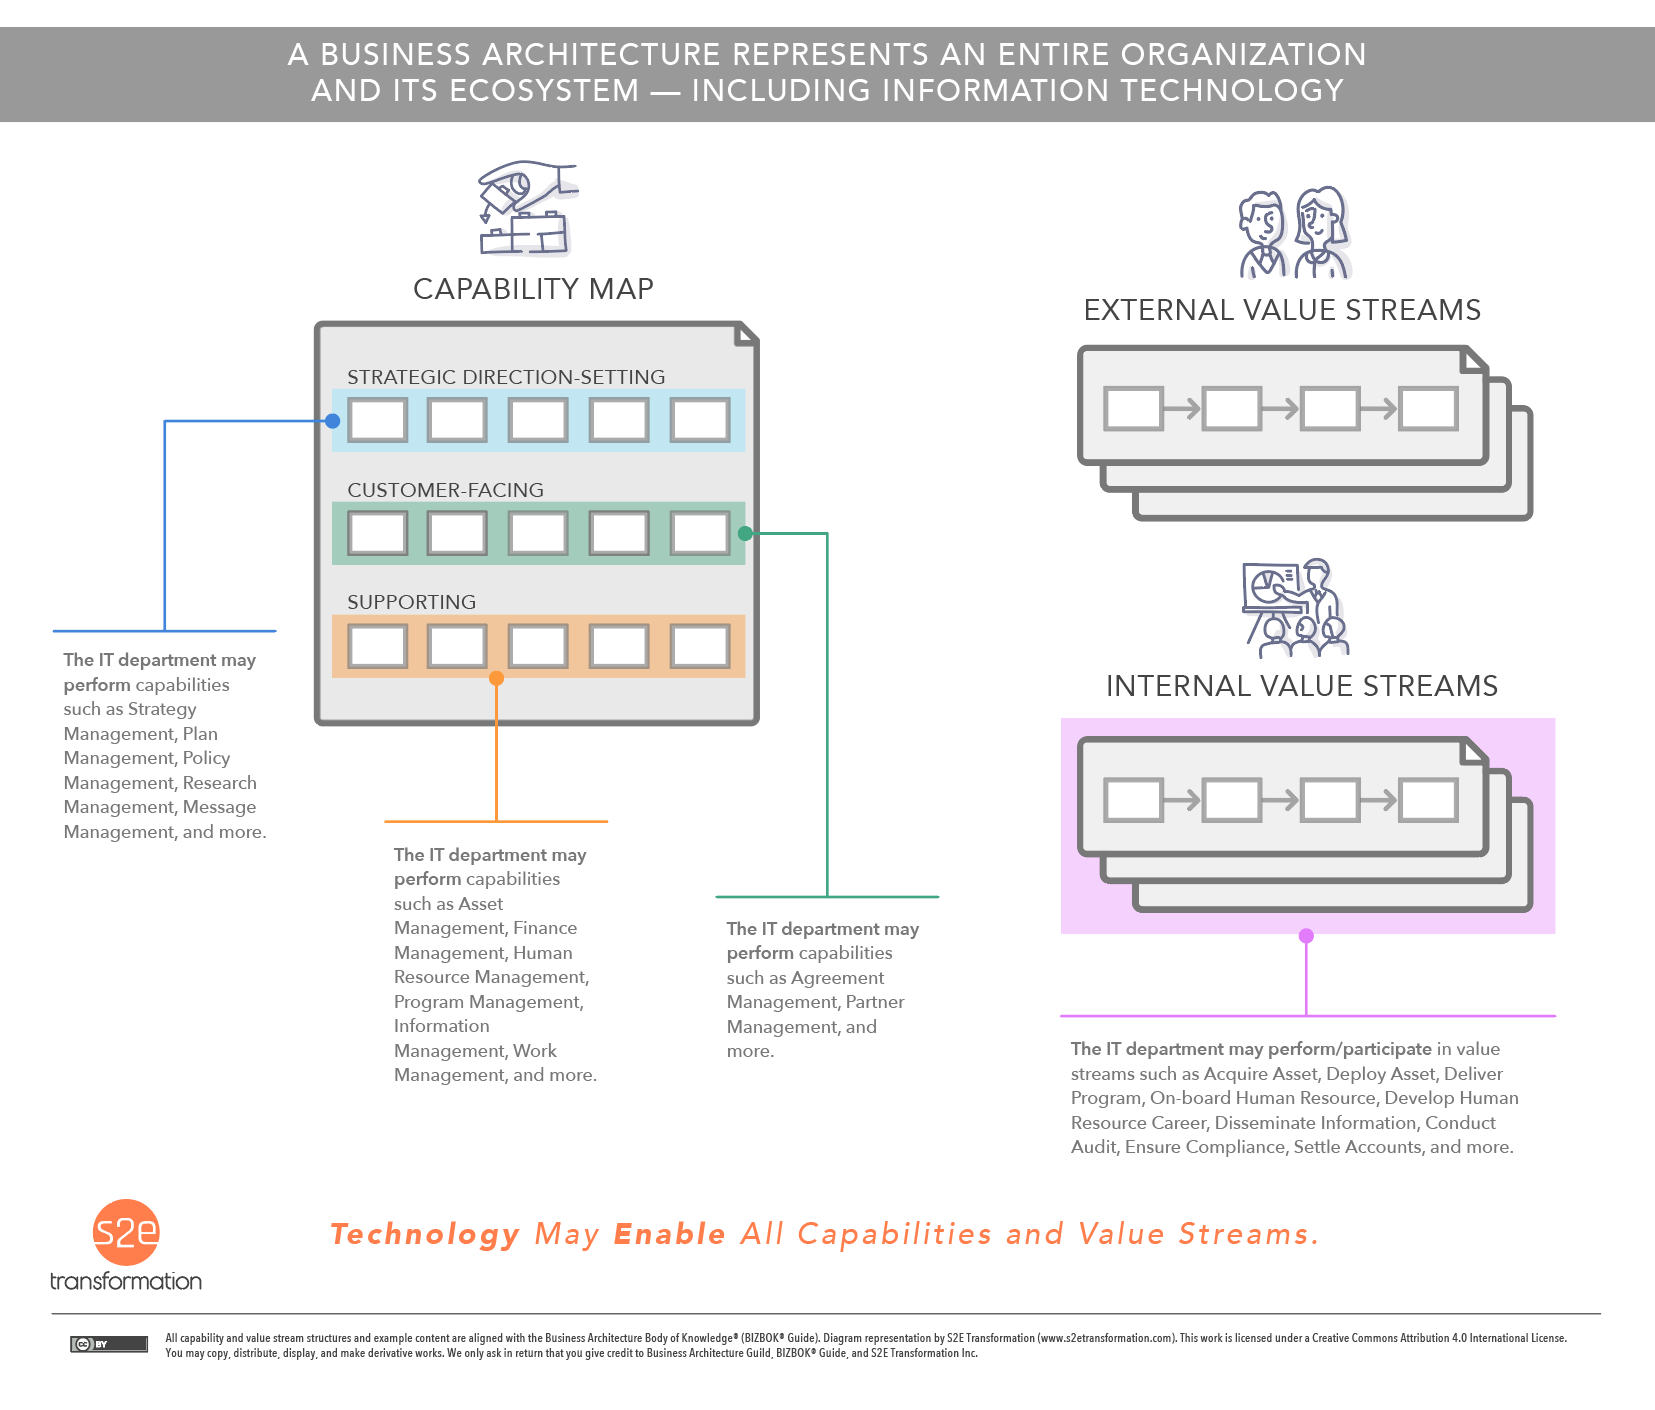 A Business Architecture Represents An Entire OrganizationAnd Its Ecosystem — Including Information Technology